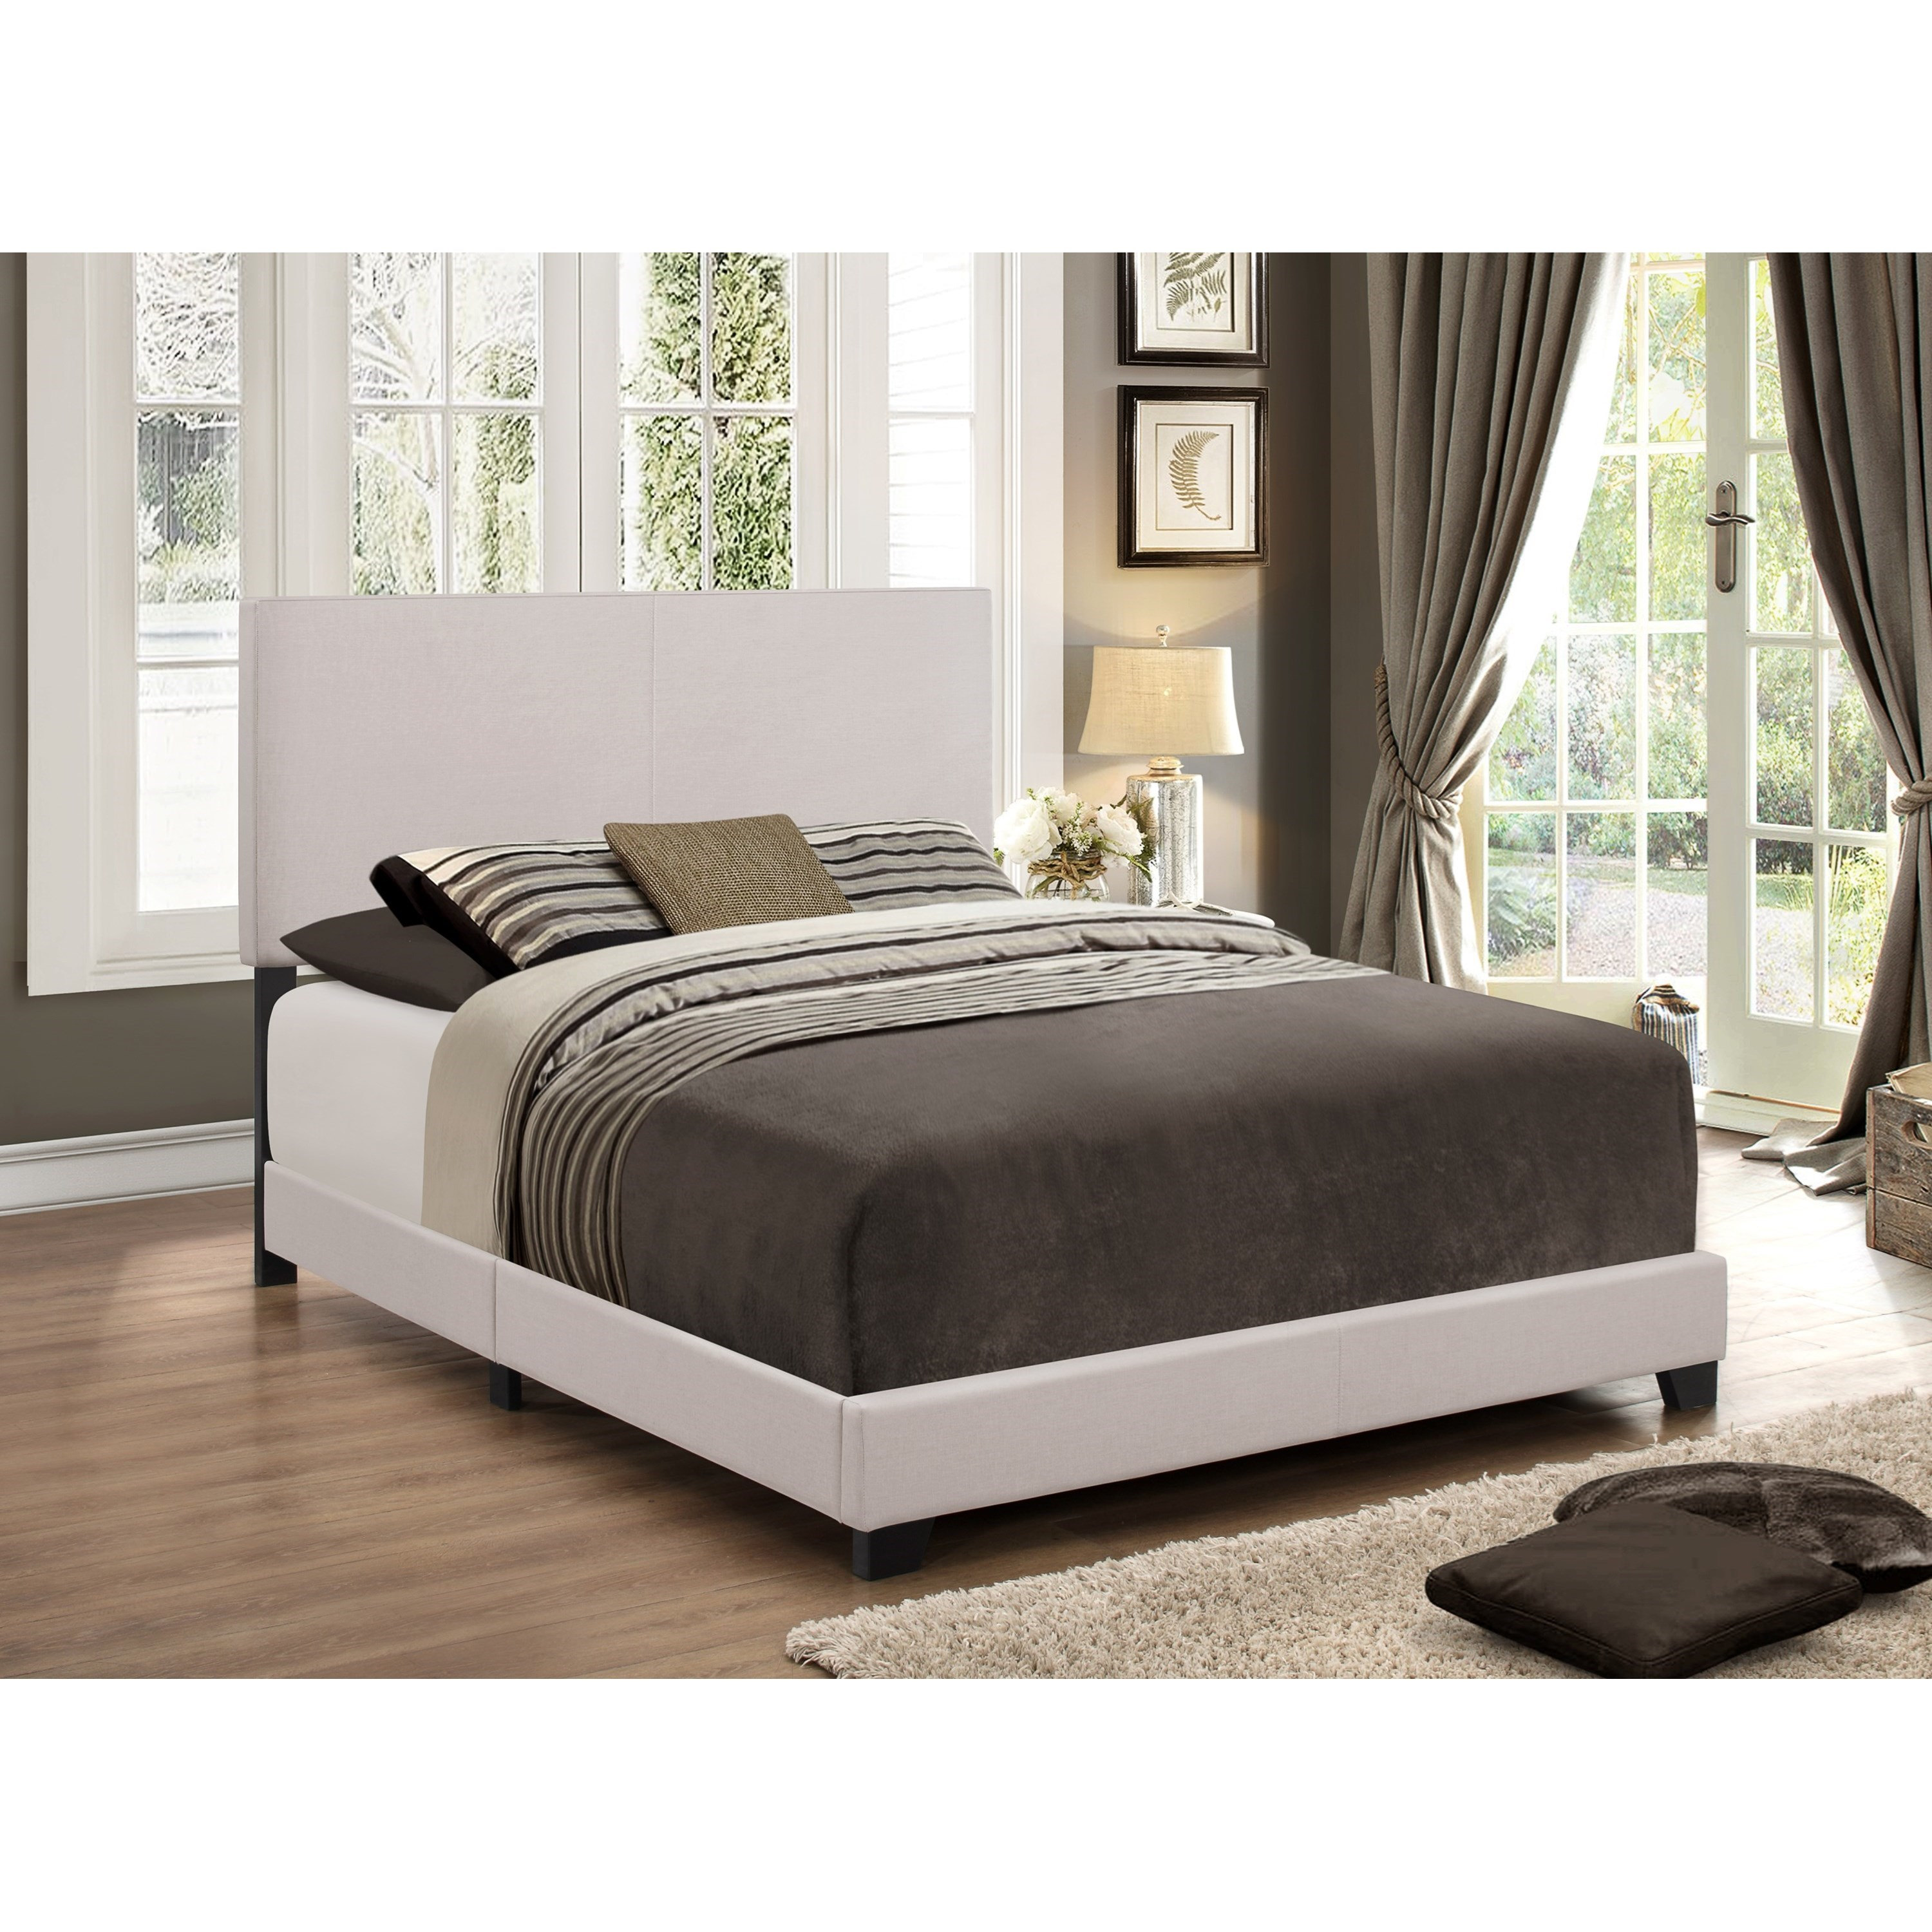 Crown Mark Erin King Upholstered Platform Bed - Item Number: 5271KH-K